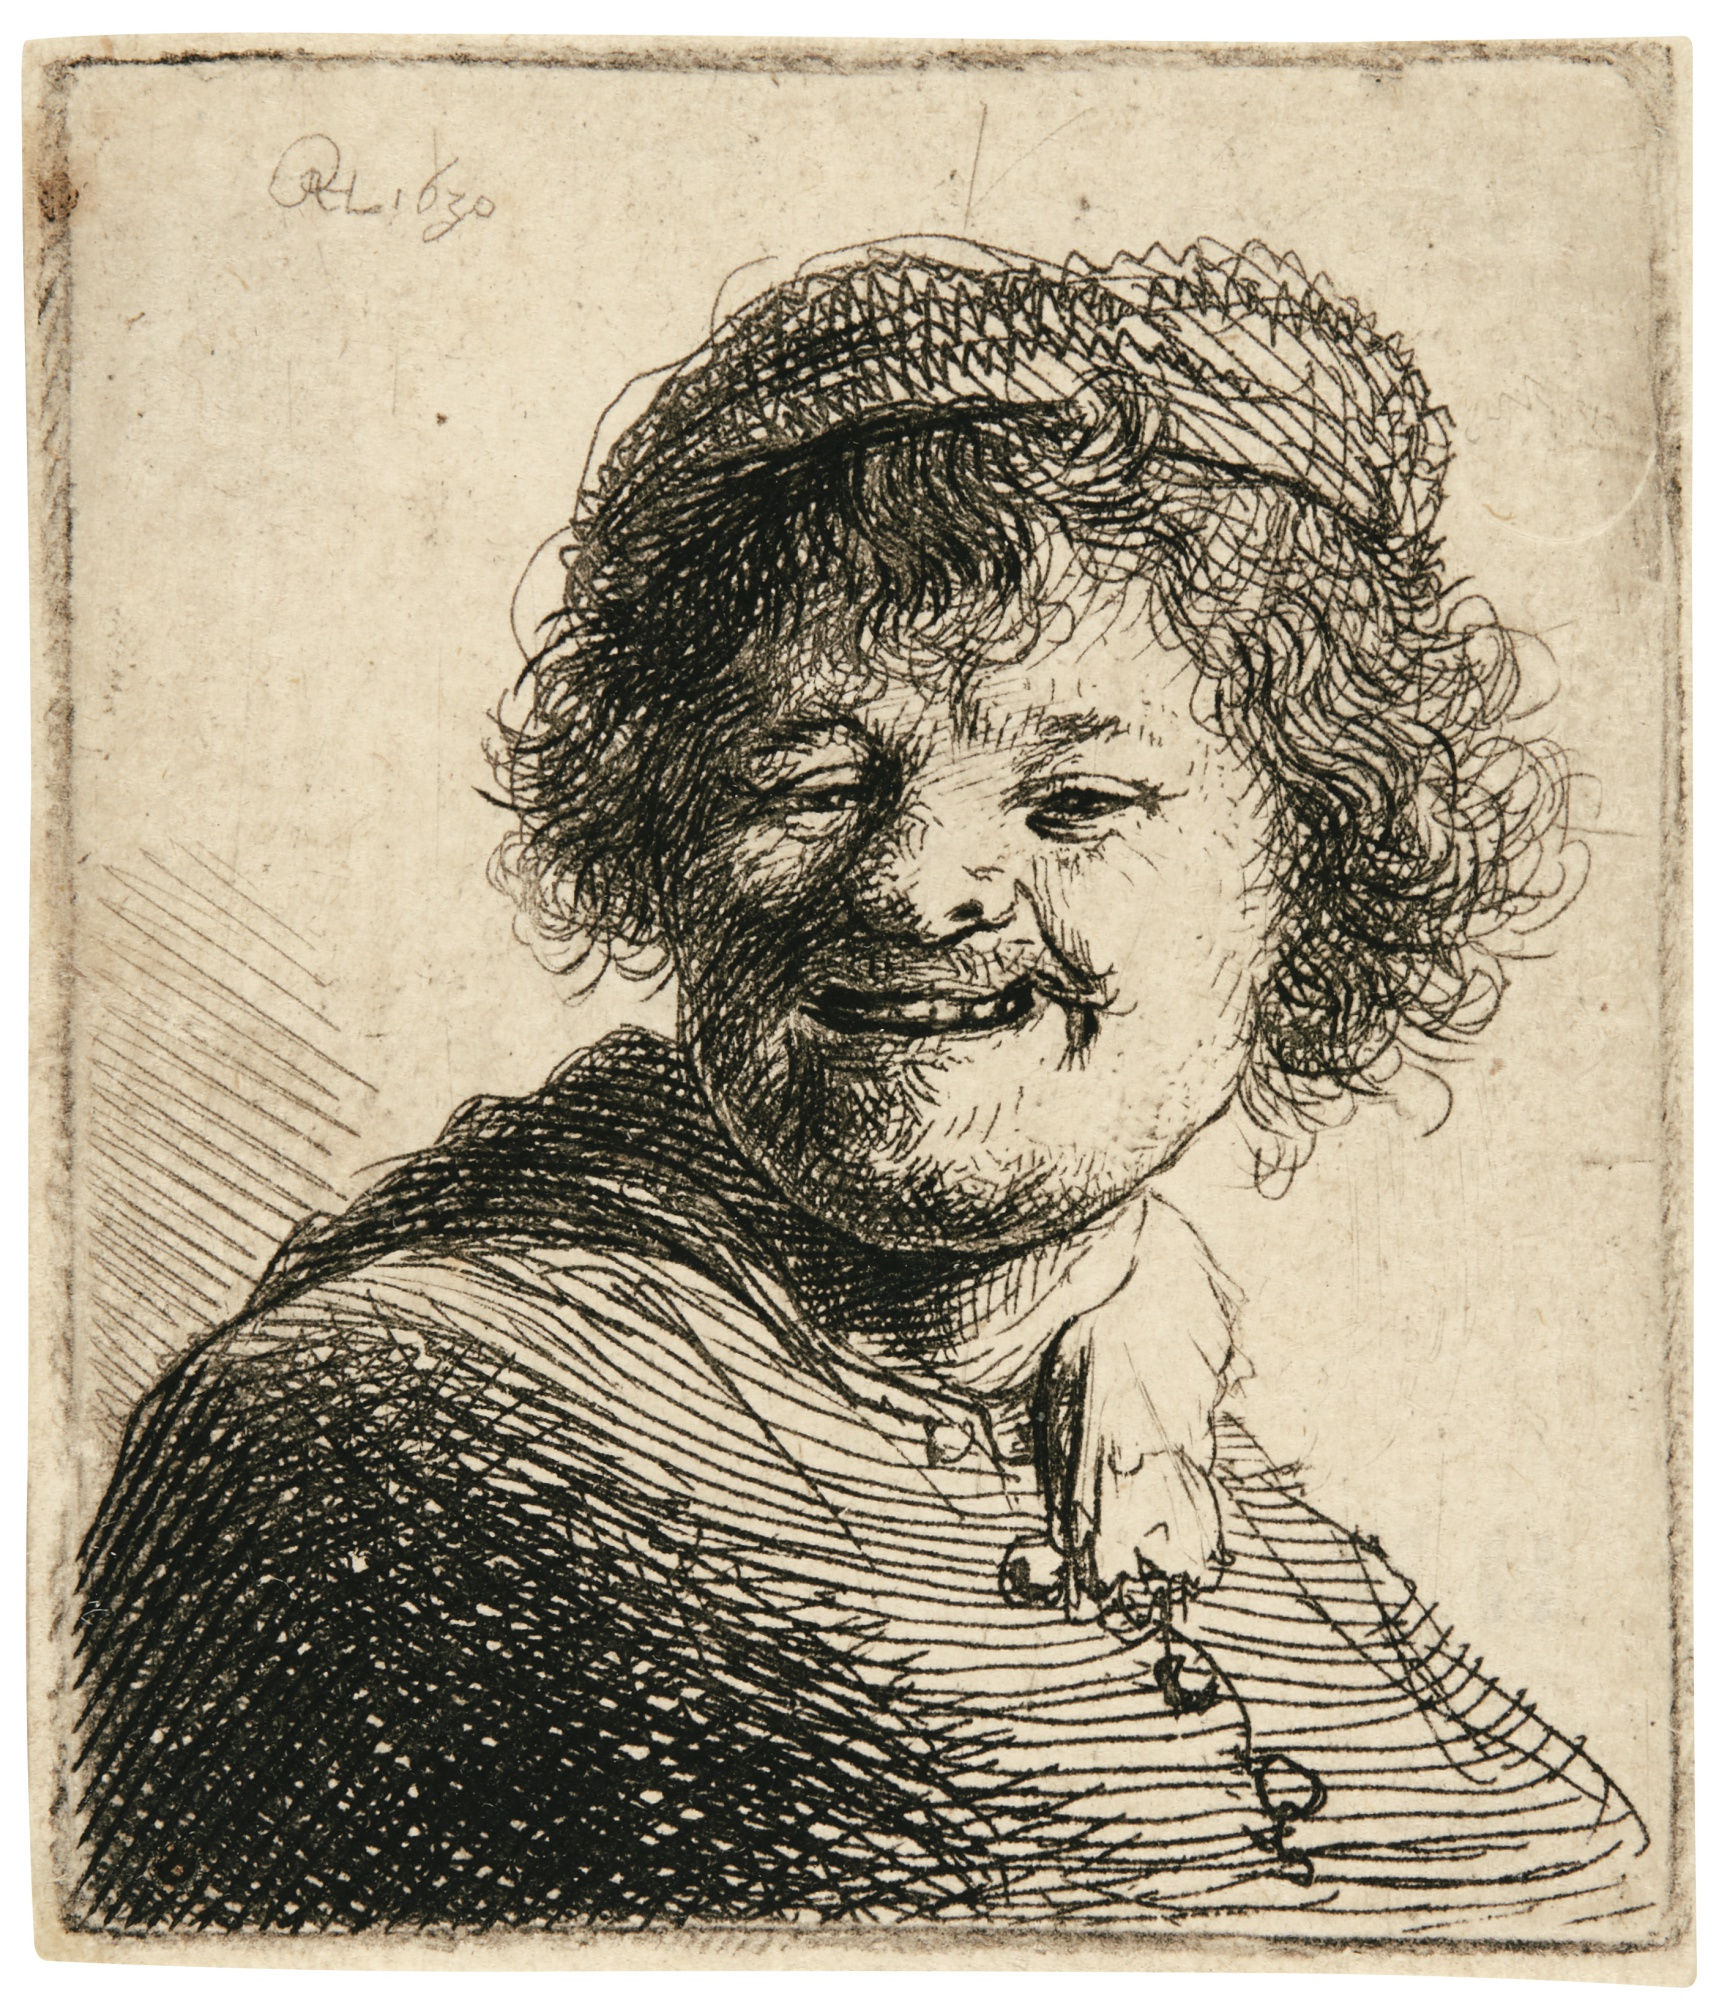 Rembrandt van Rijn-Self-Portrait In A Cap: Laughing (B., Holl 316; New Holl. 70; H. 34)-1630